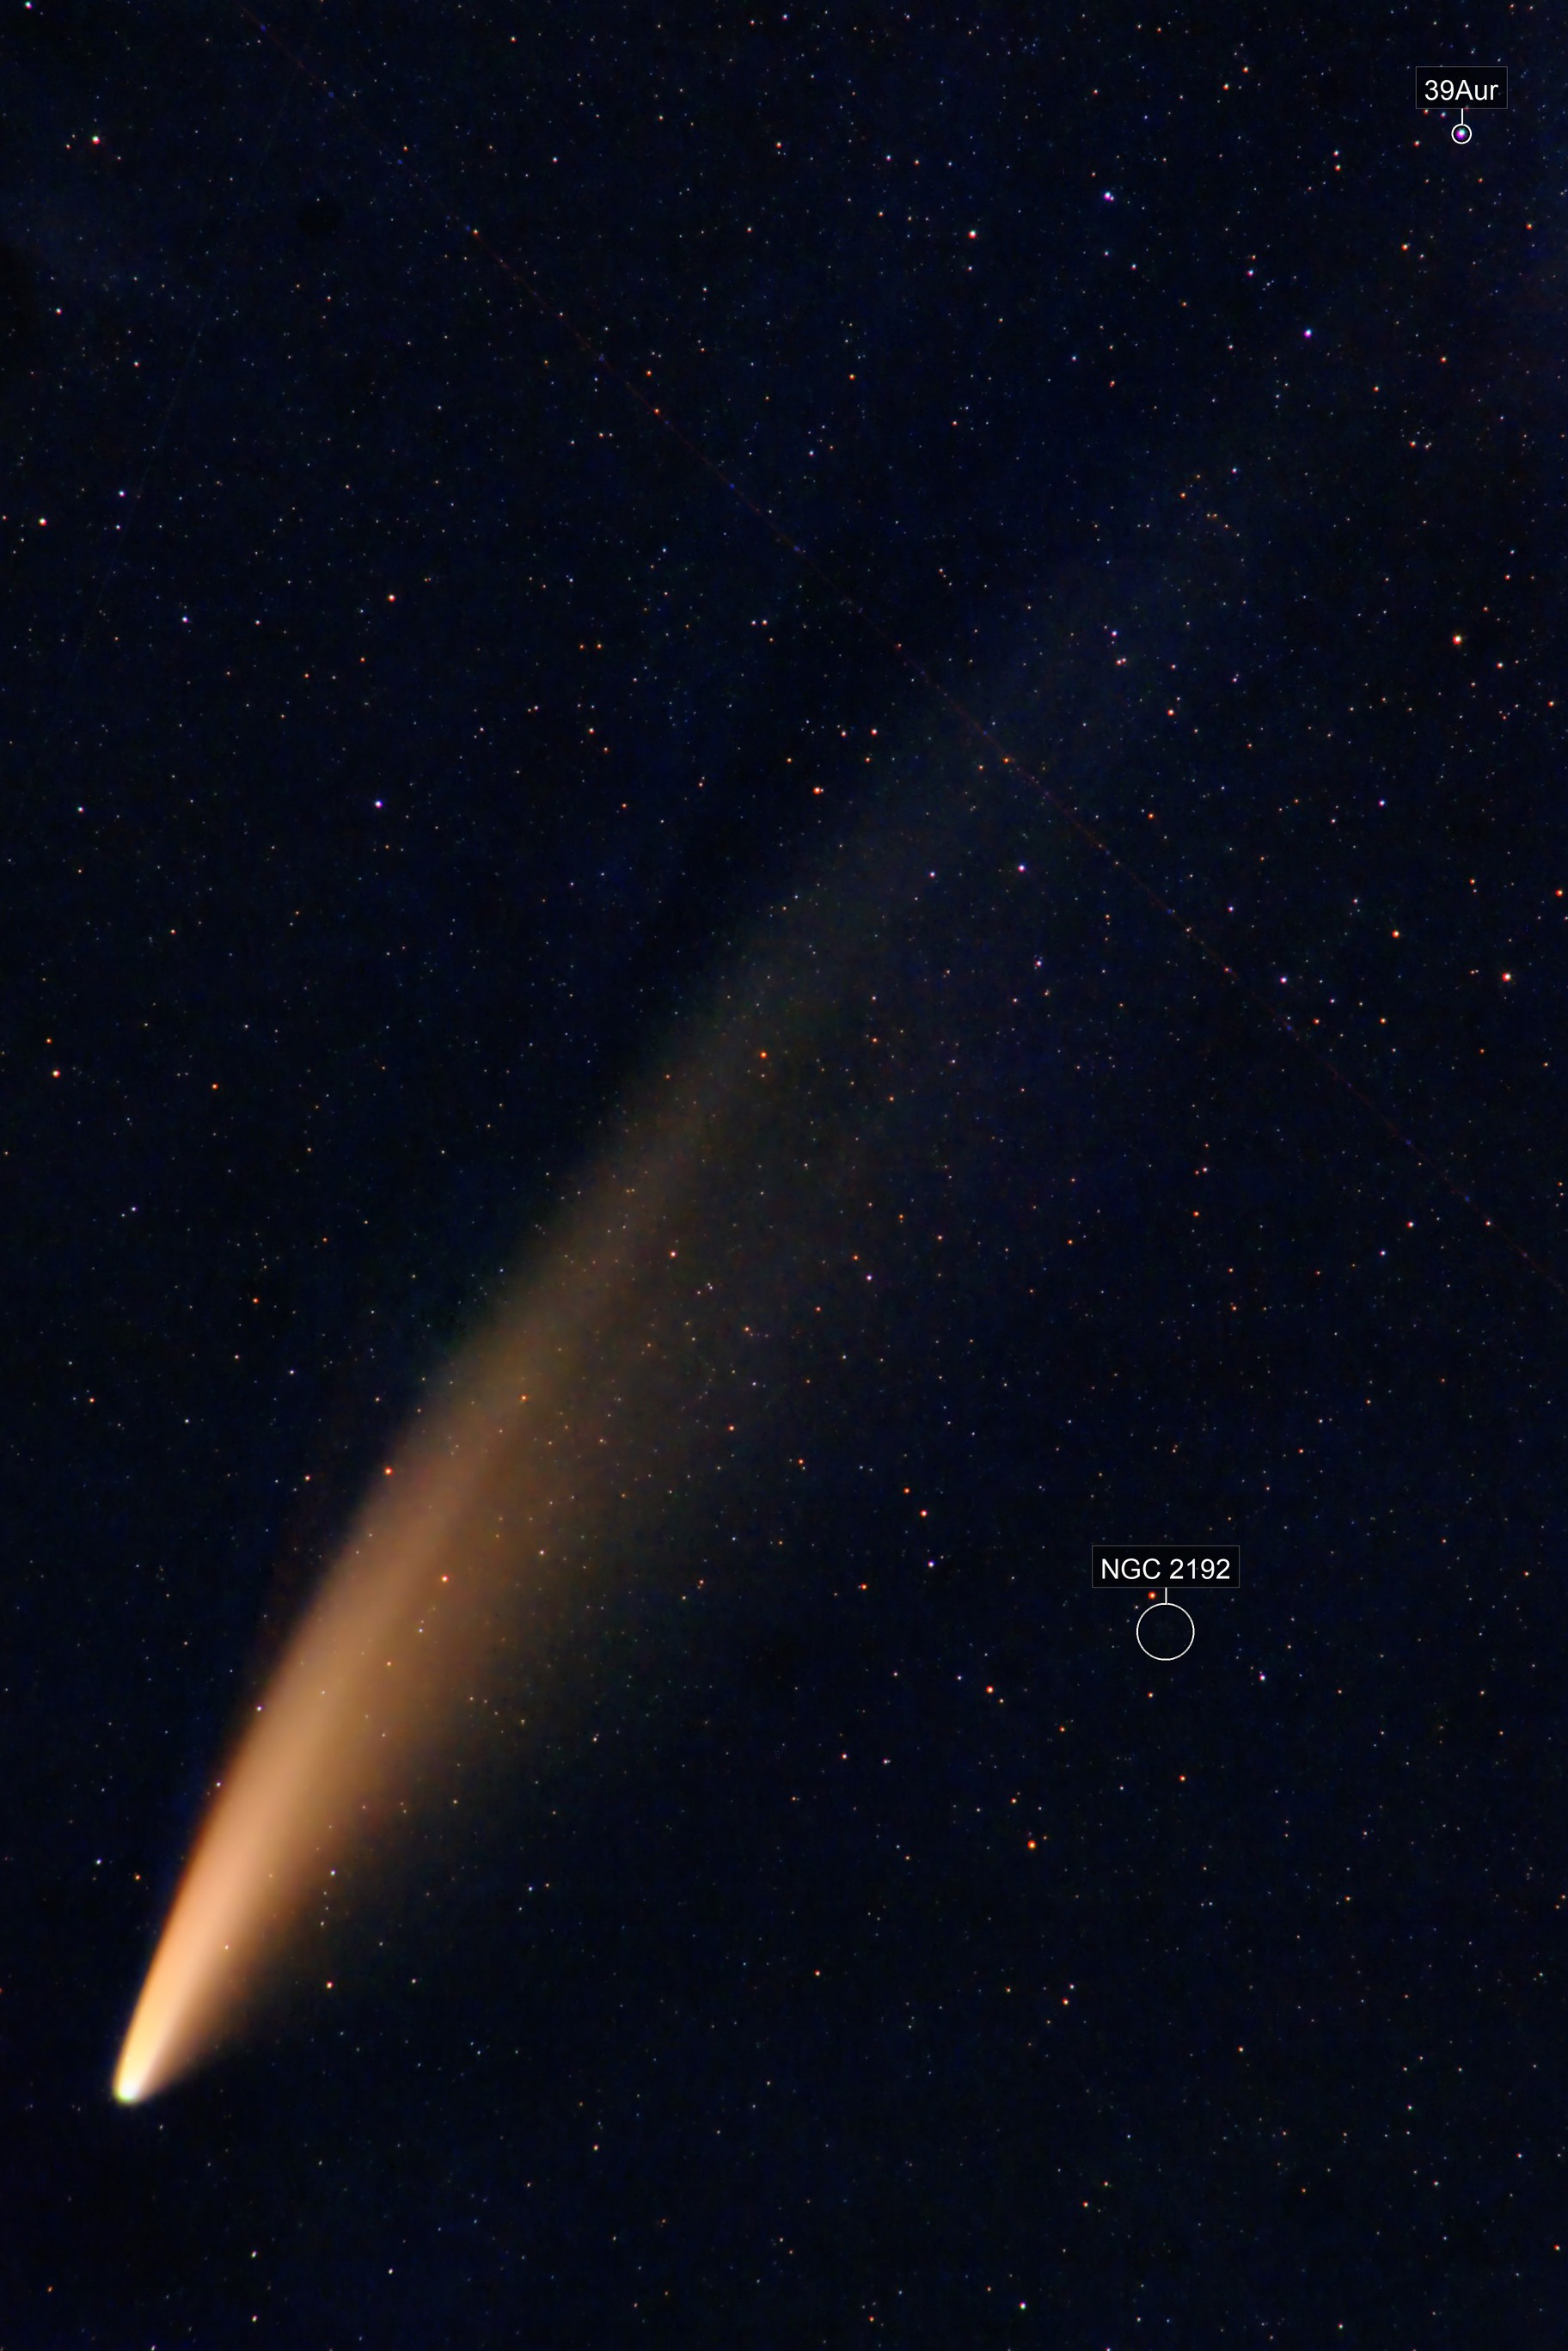 Comet NEOWISE on 7-9-20